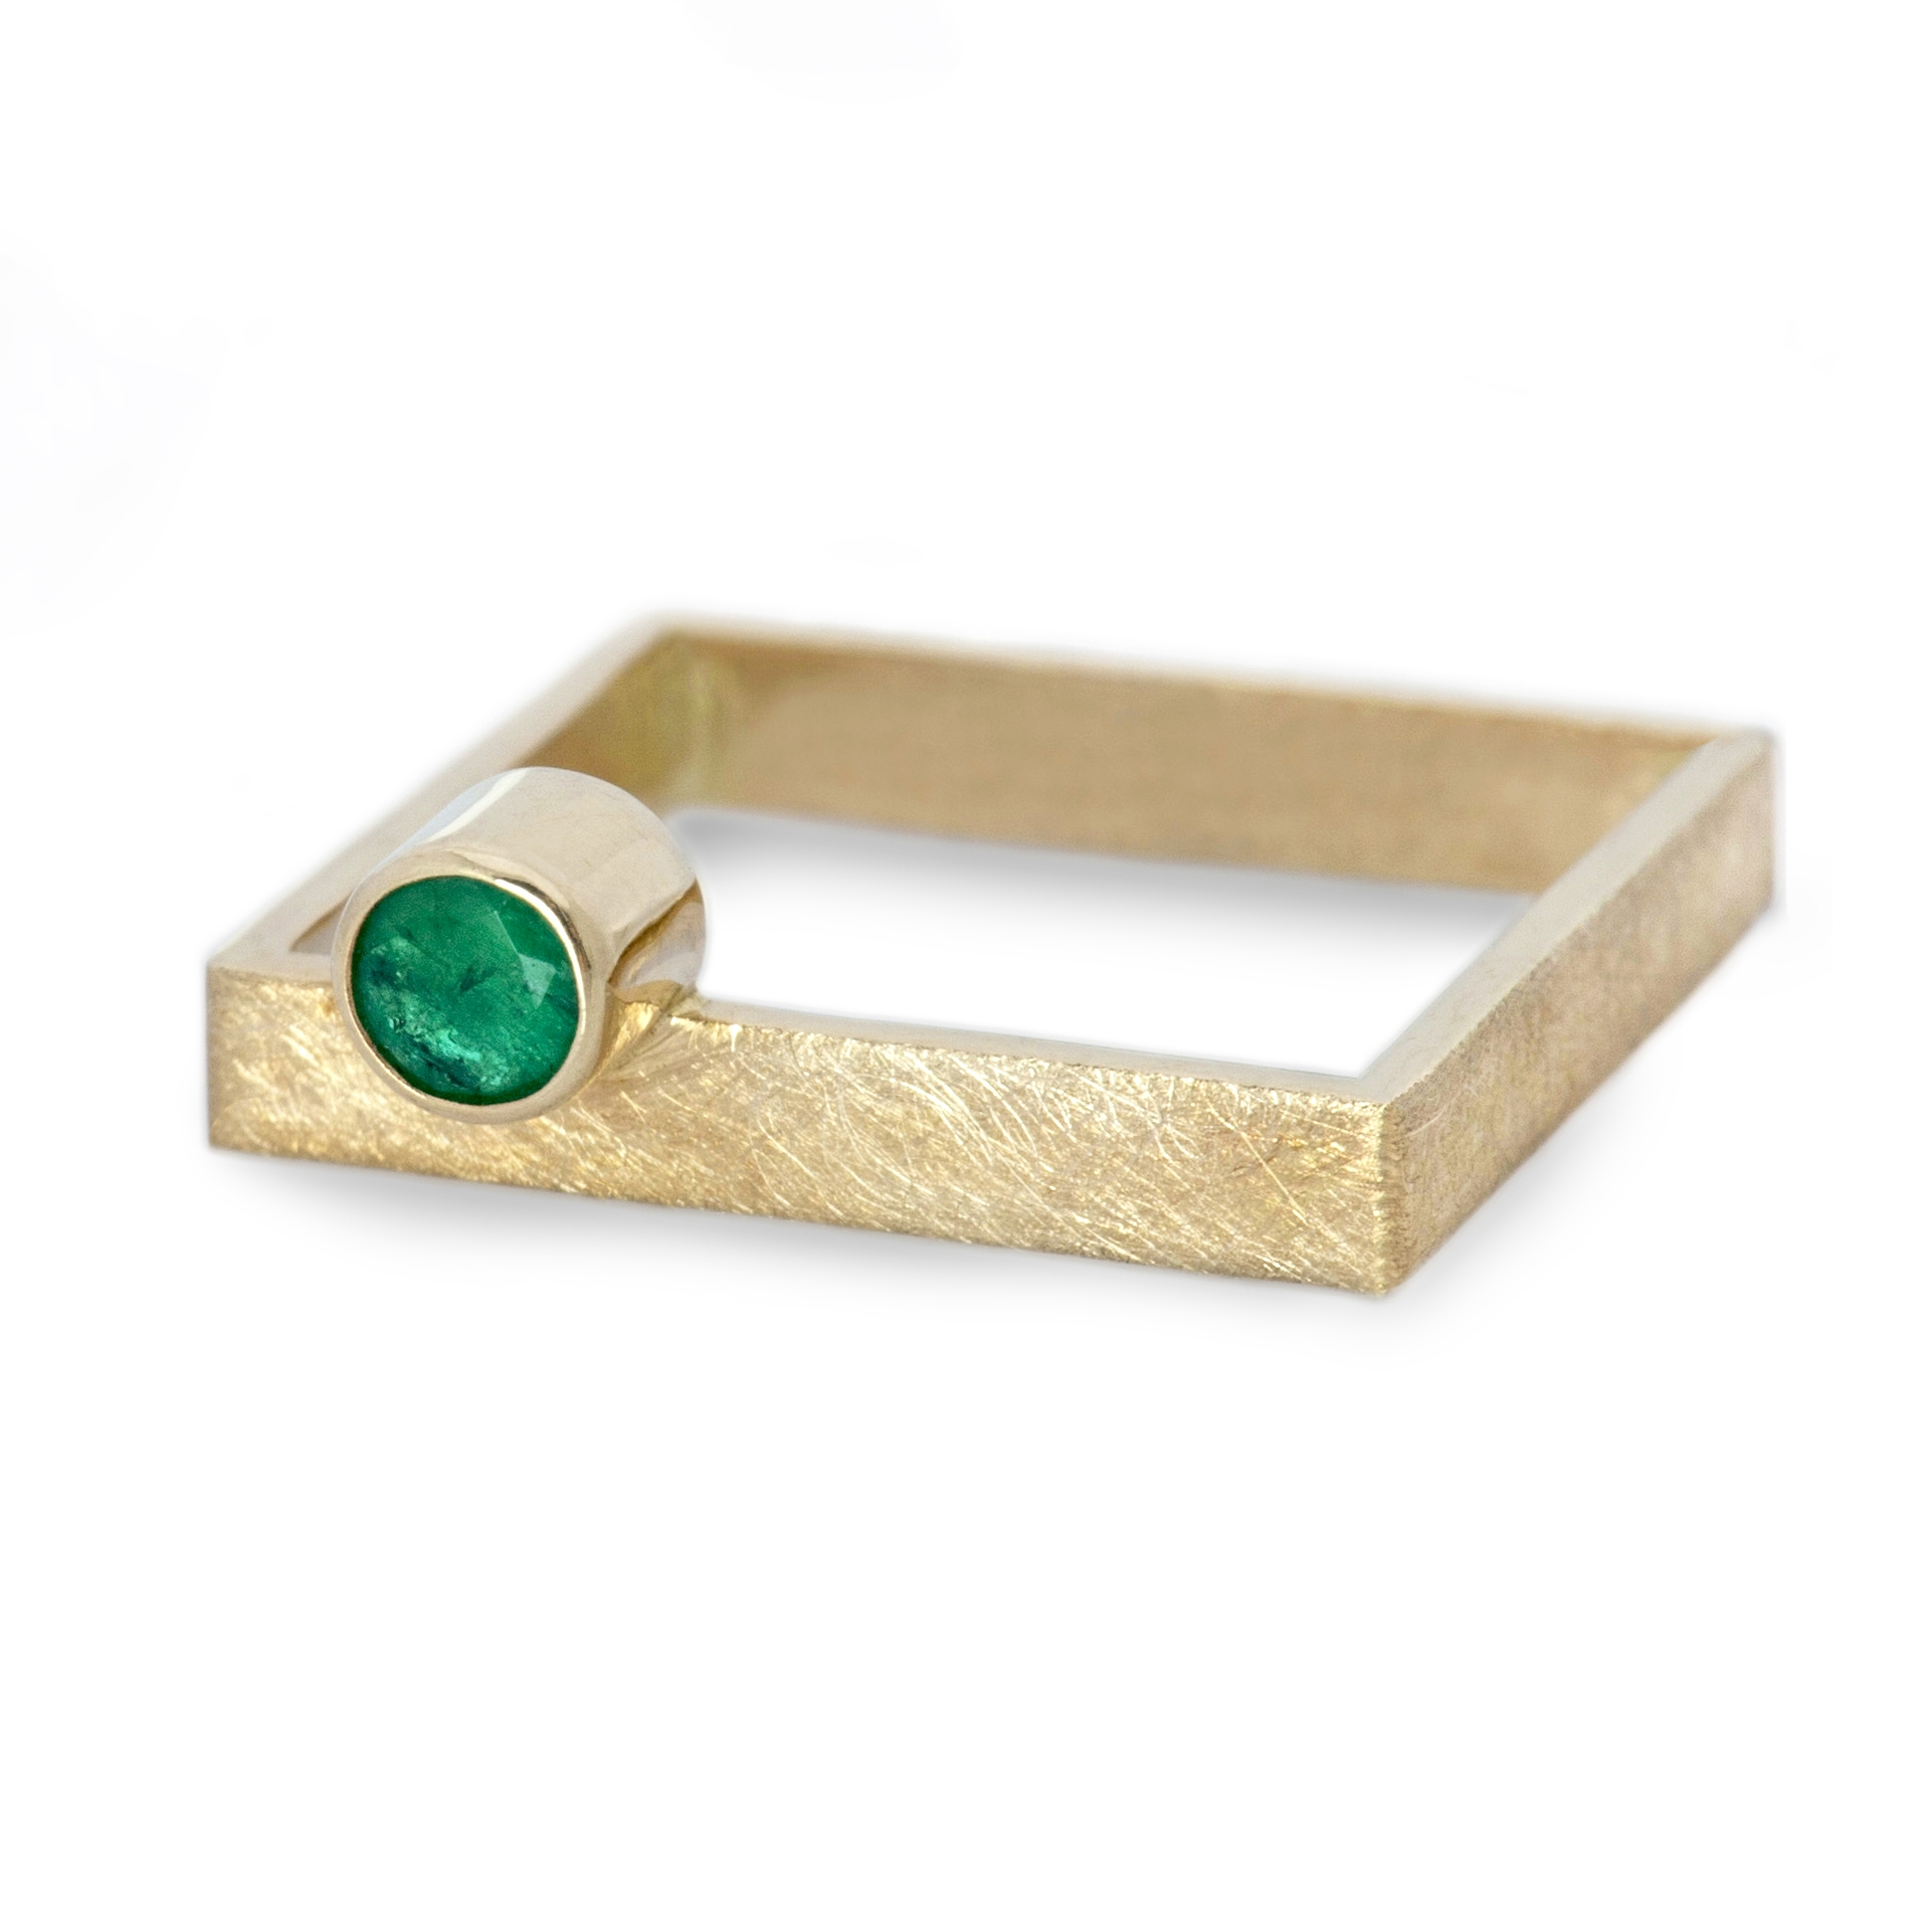 emerald on a gold square